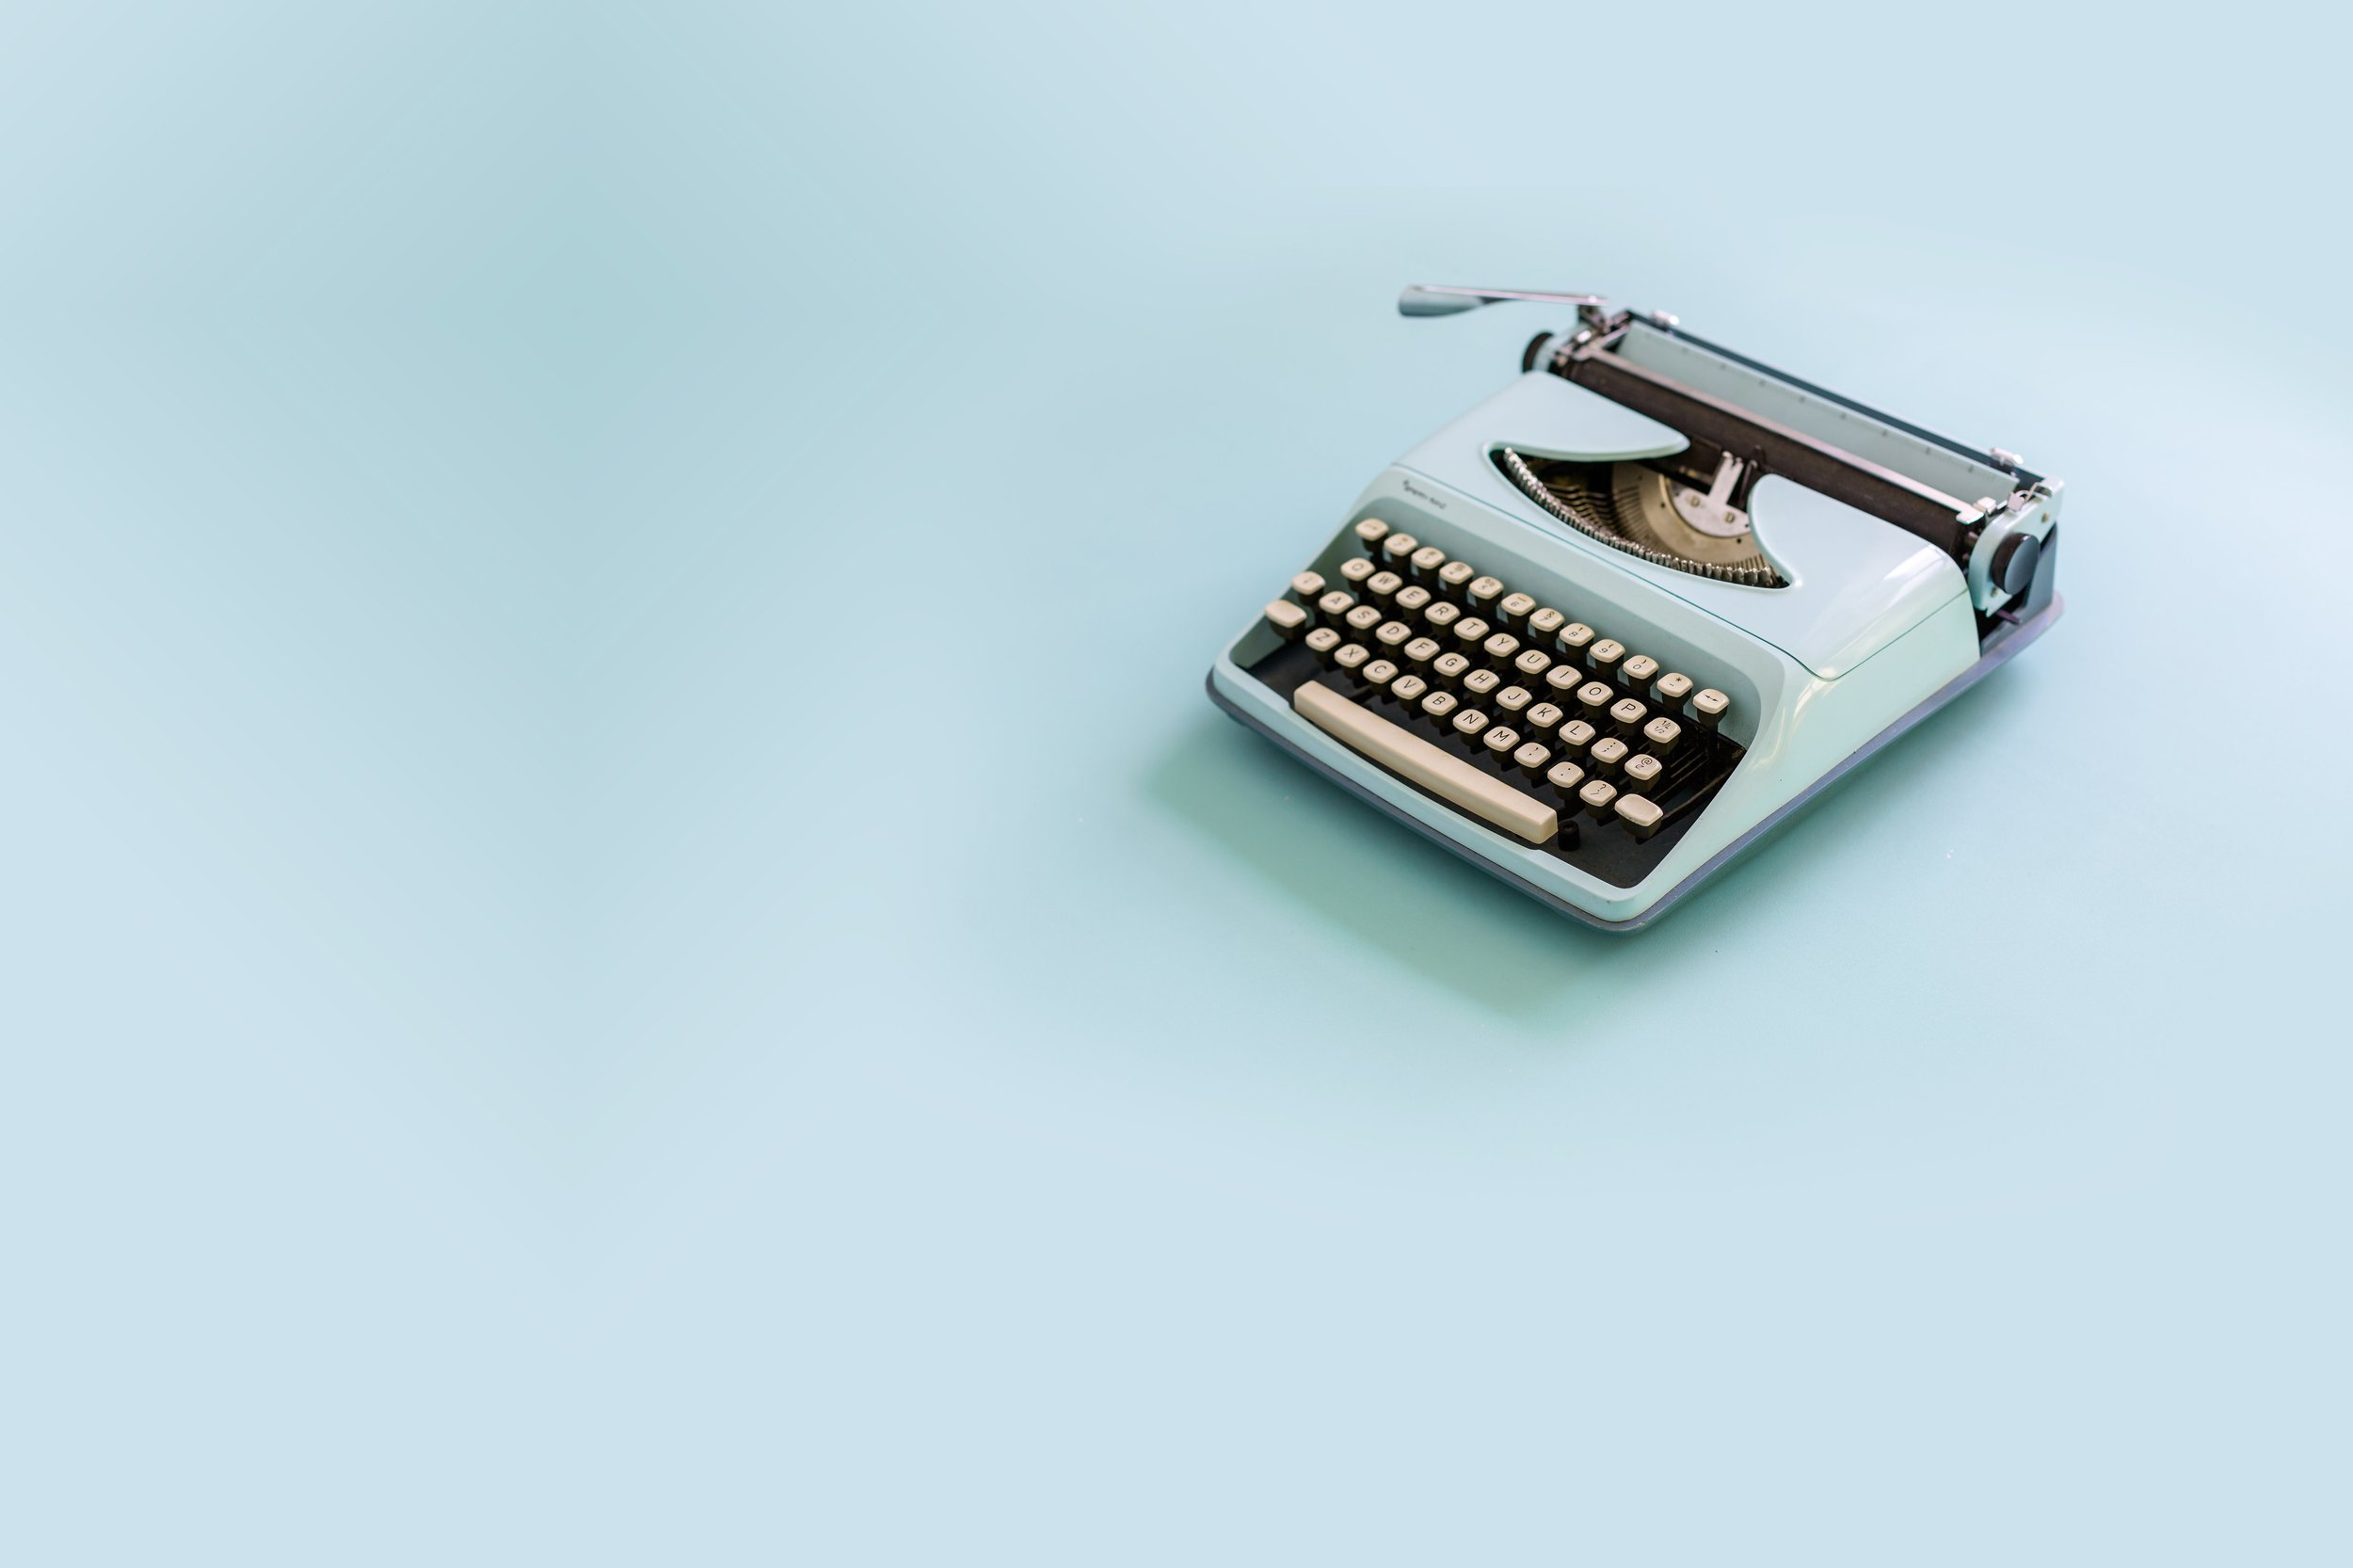 Copywriter and communications specialist - Helping you tell your story